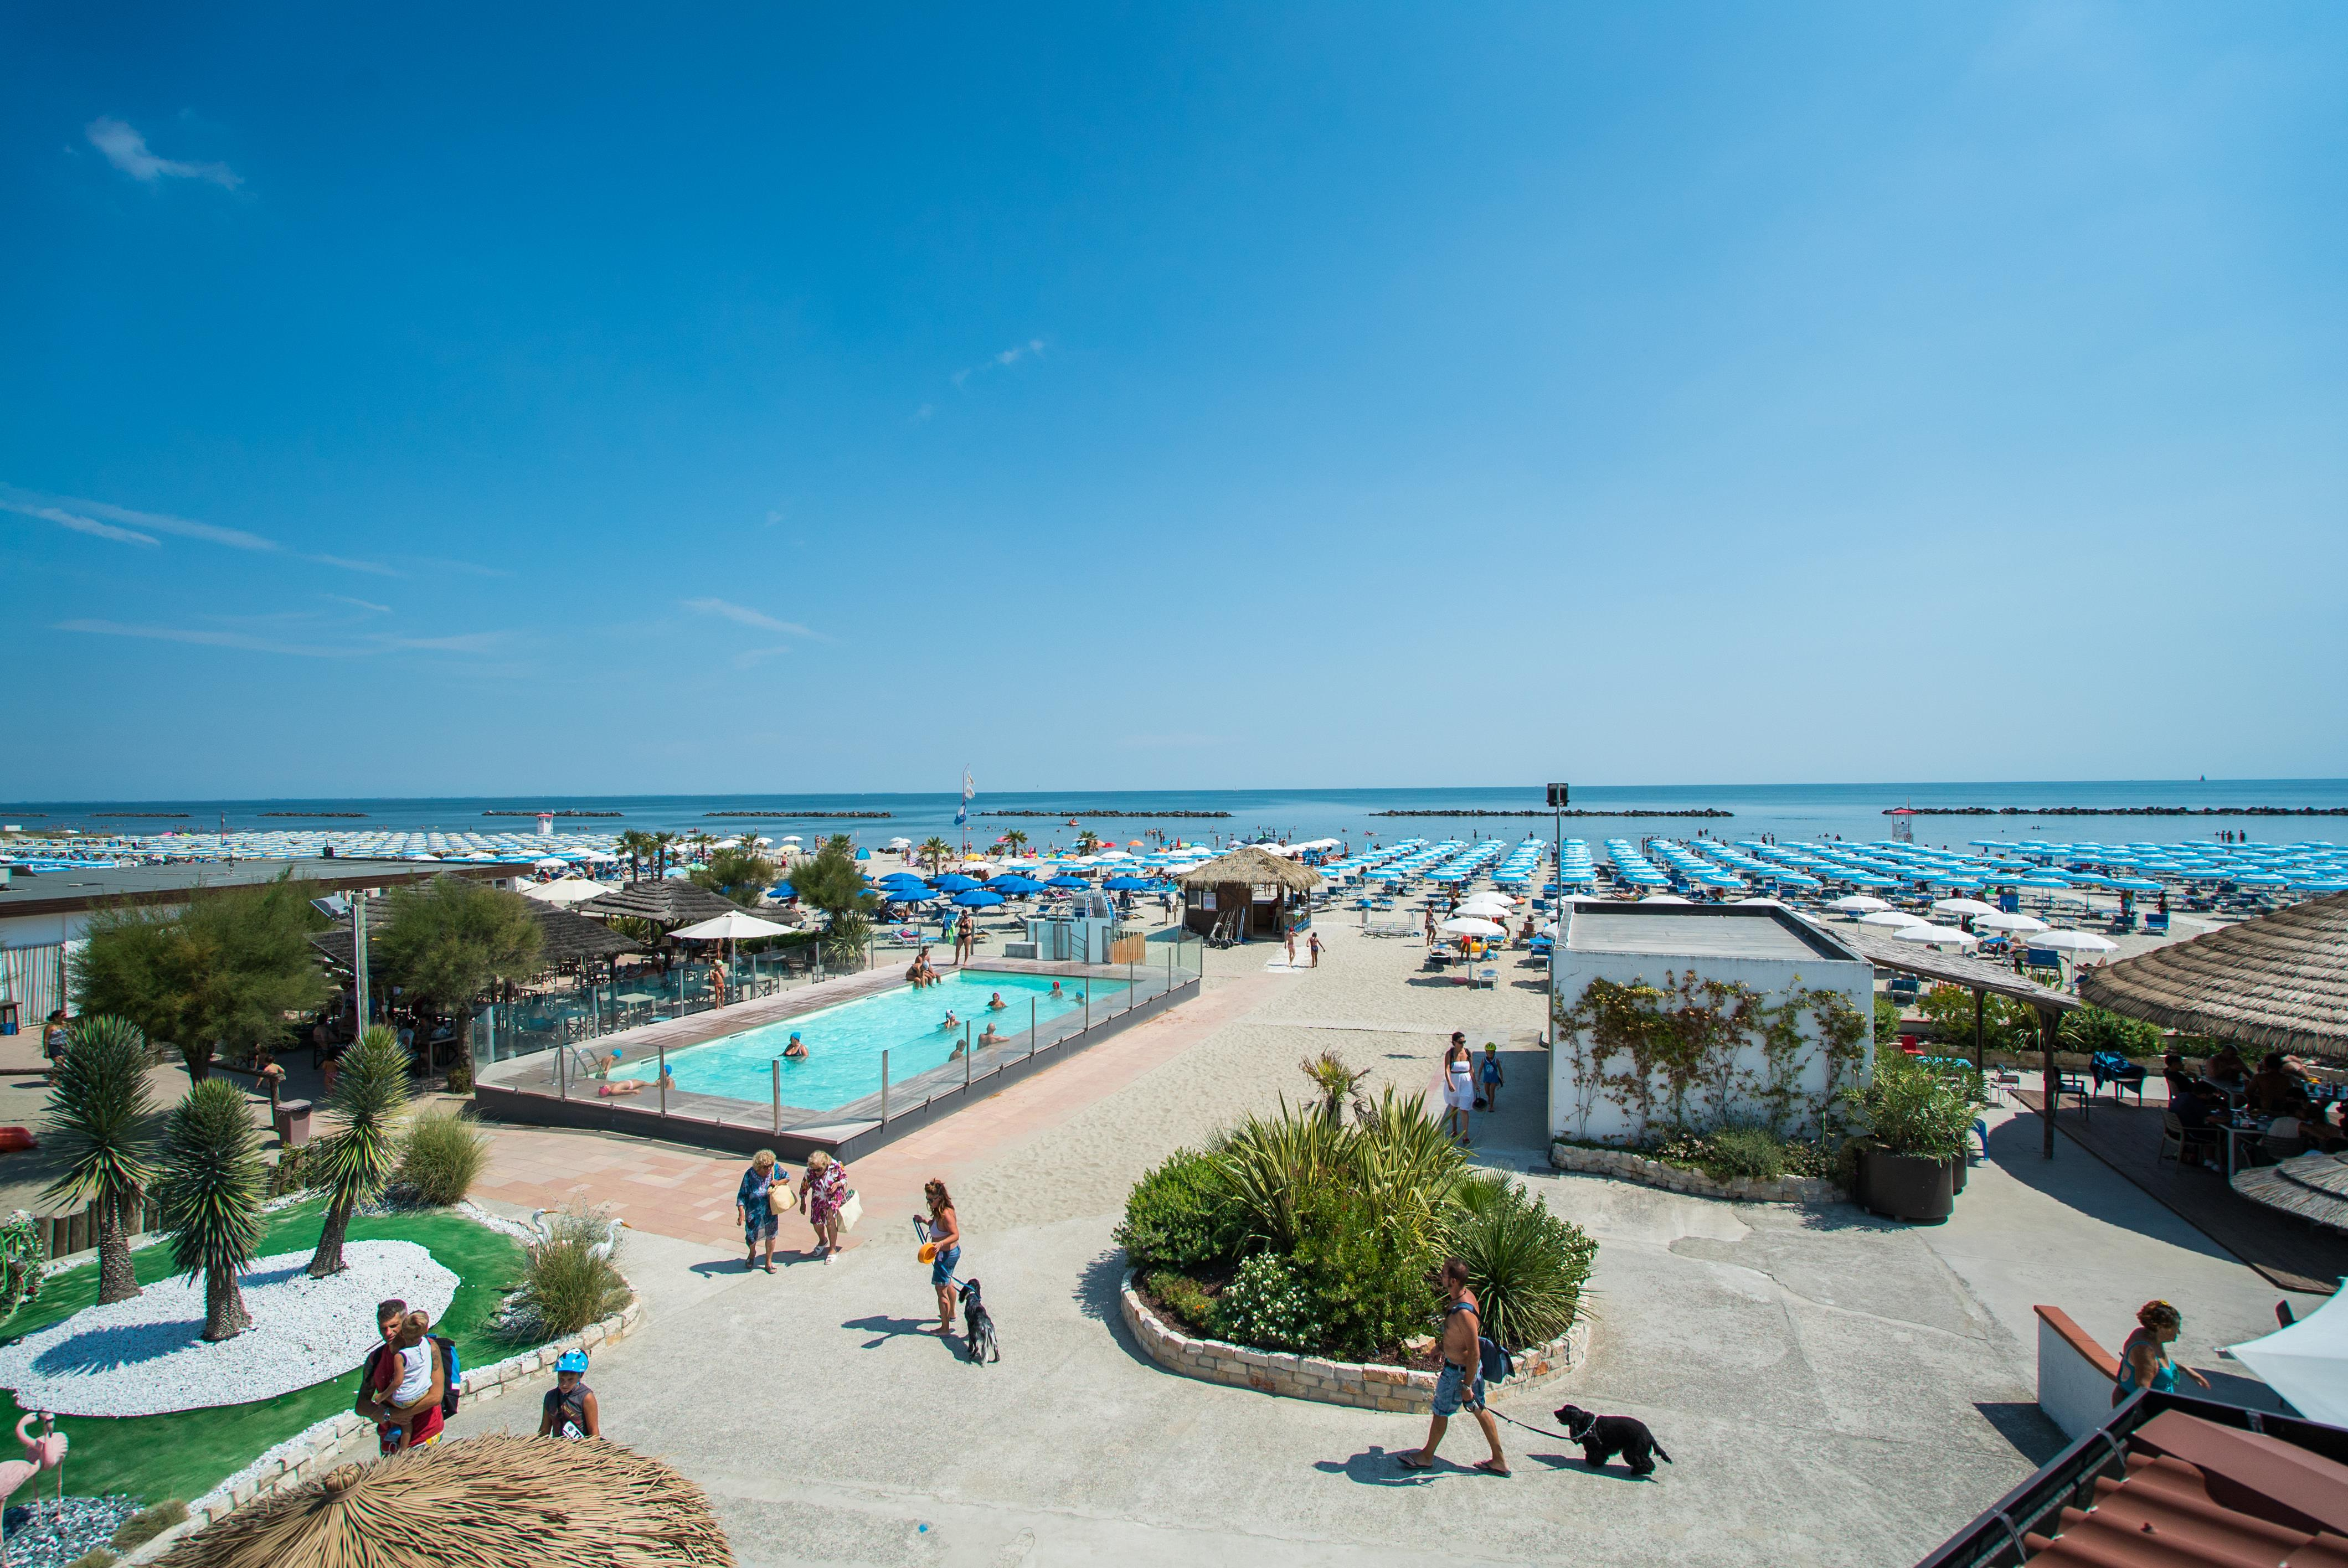 Plages Tahiti Camping & Thermae Bungalow Park - Lido delle Nazioni